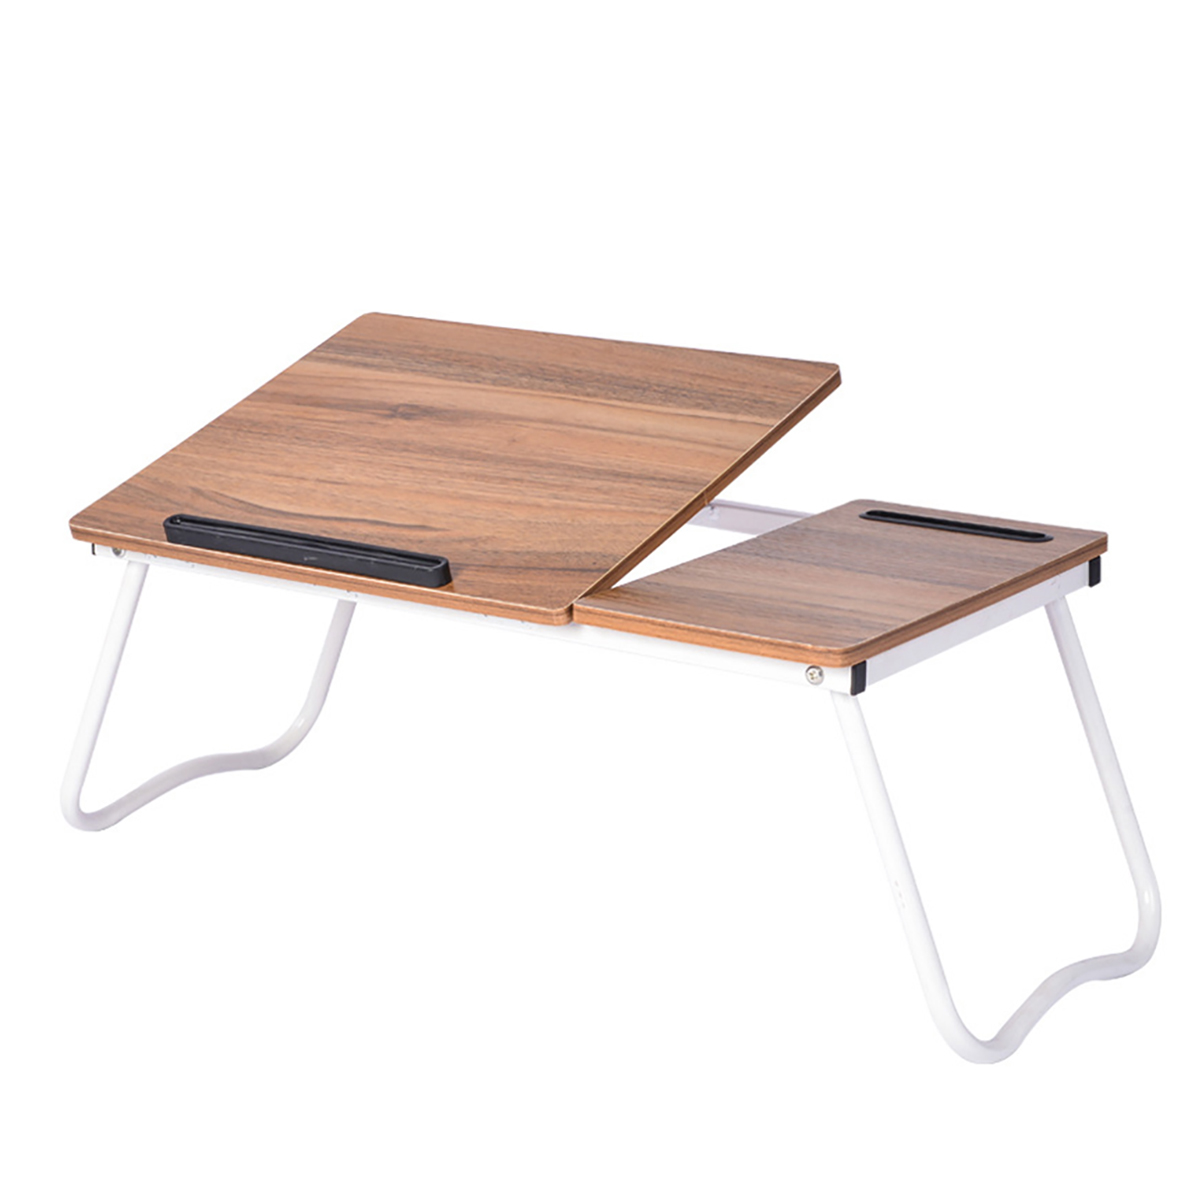 Laptop Desk Computer Table Adjustable Angle Folding Laptop Notebook Stand Tray Table Desk Foldable With Slot For Bed Sofa